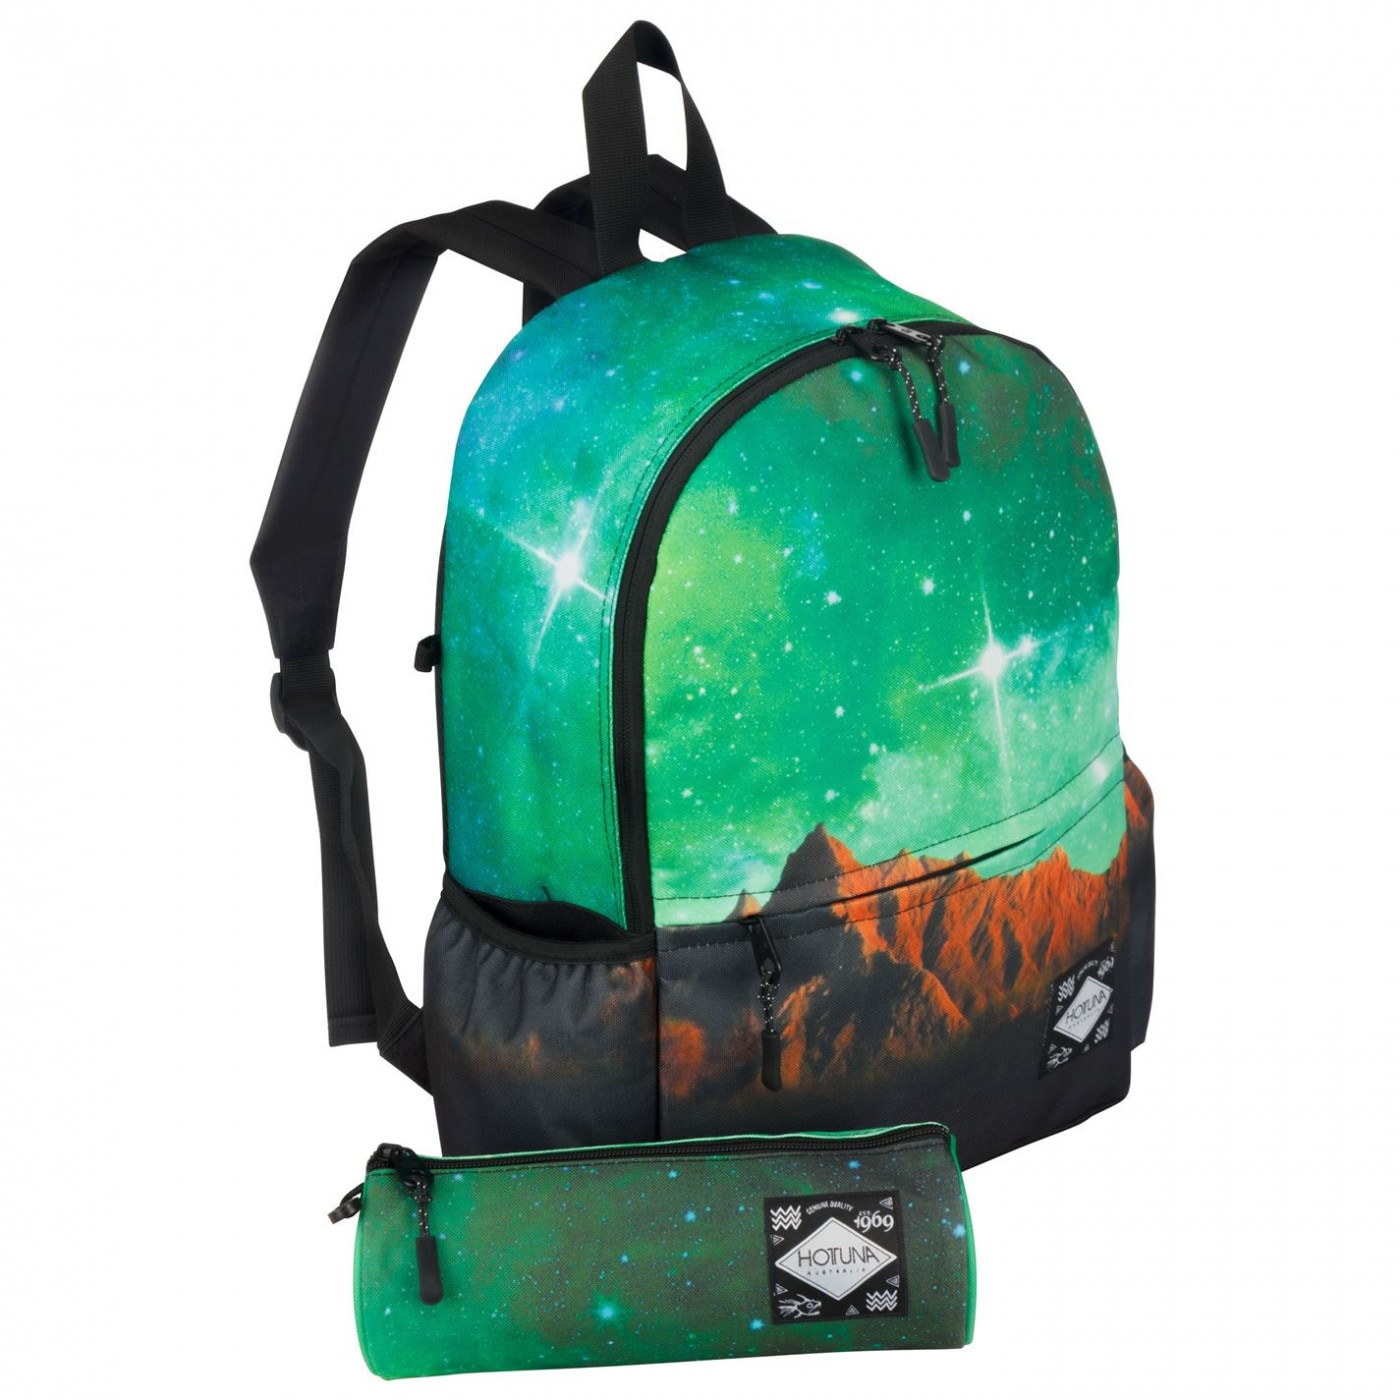 Hot Tuna Galaxy Star Backpack